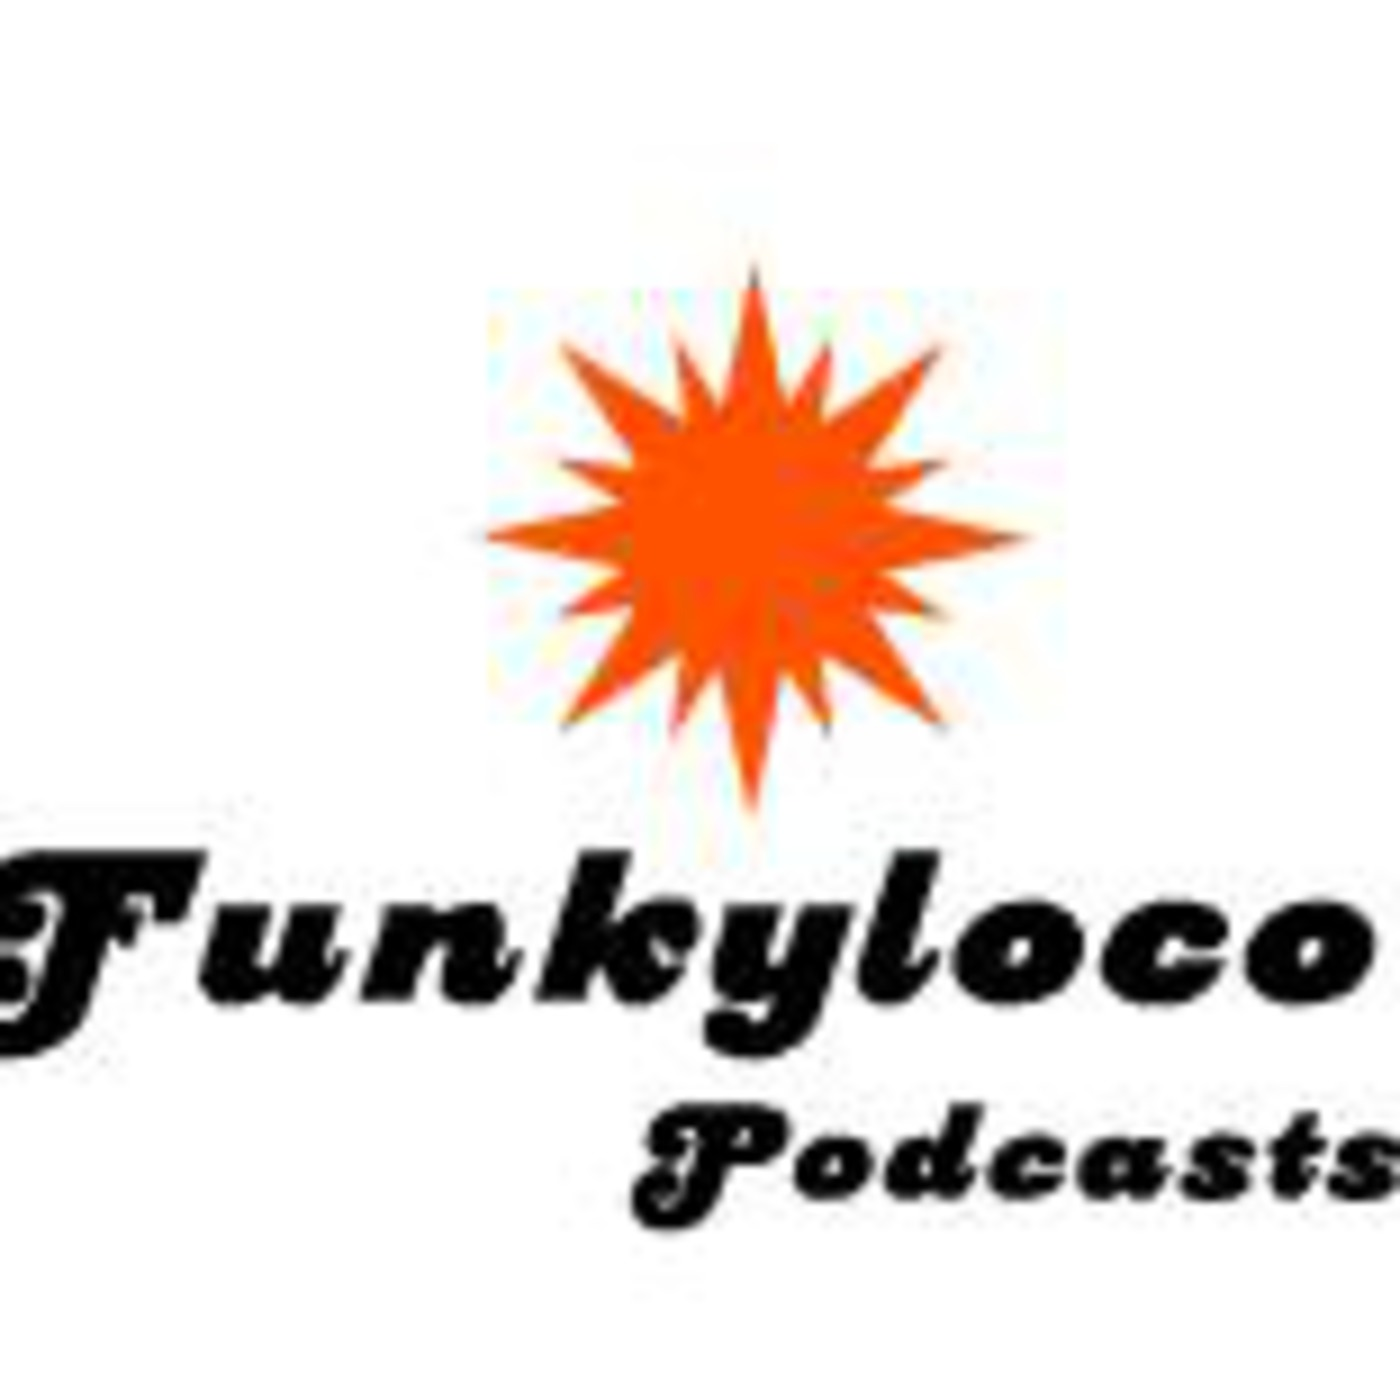 Funkyloco's Podcast